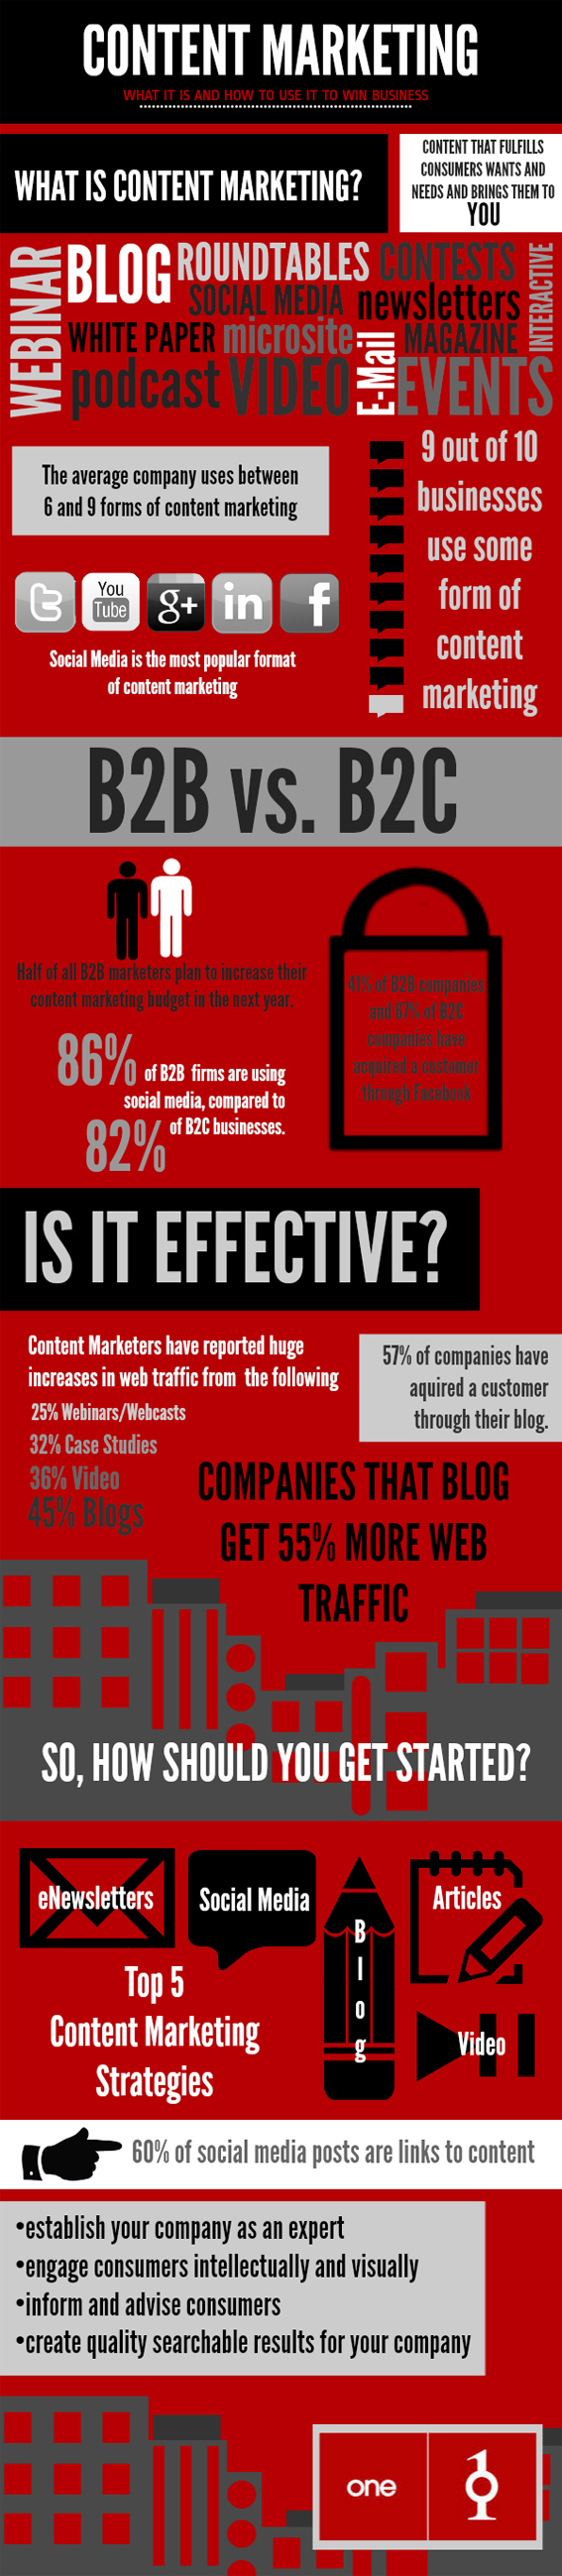 Content Marketing: What Is It And How Effective Is It For Your Business? [Infographic]